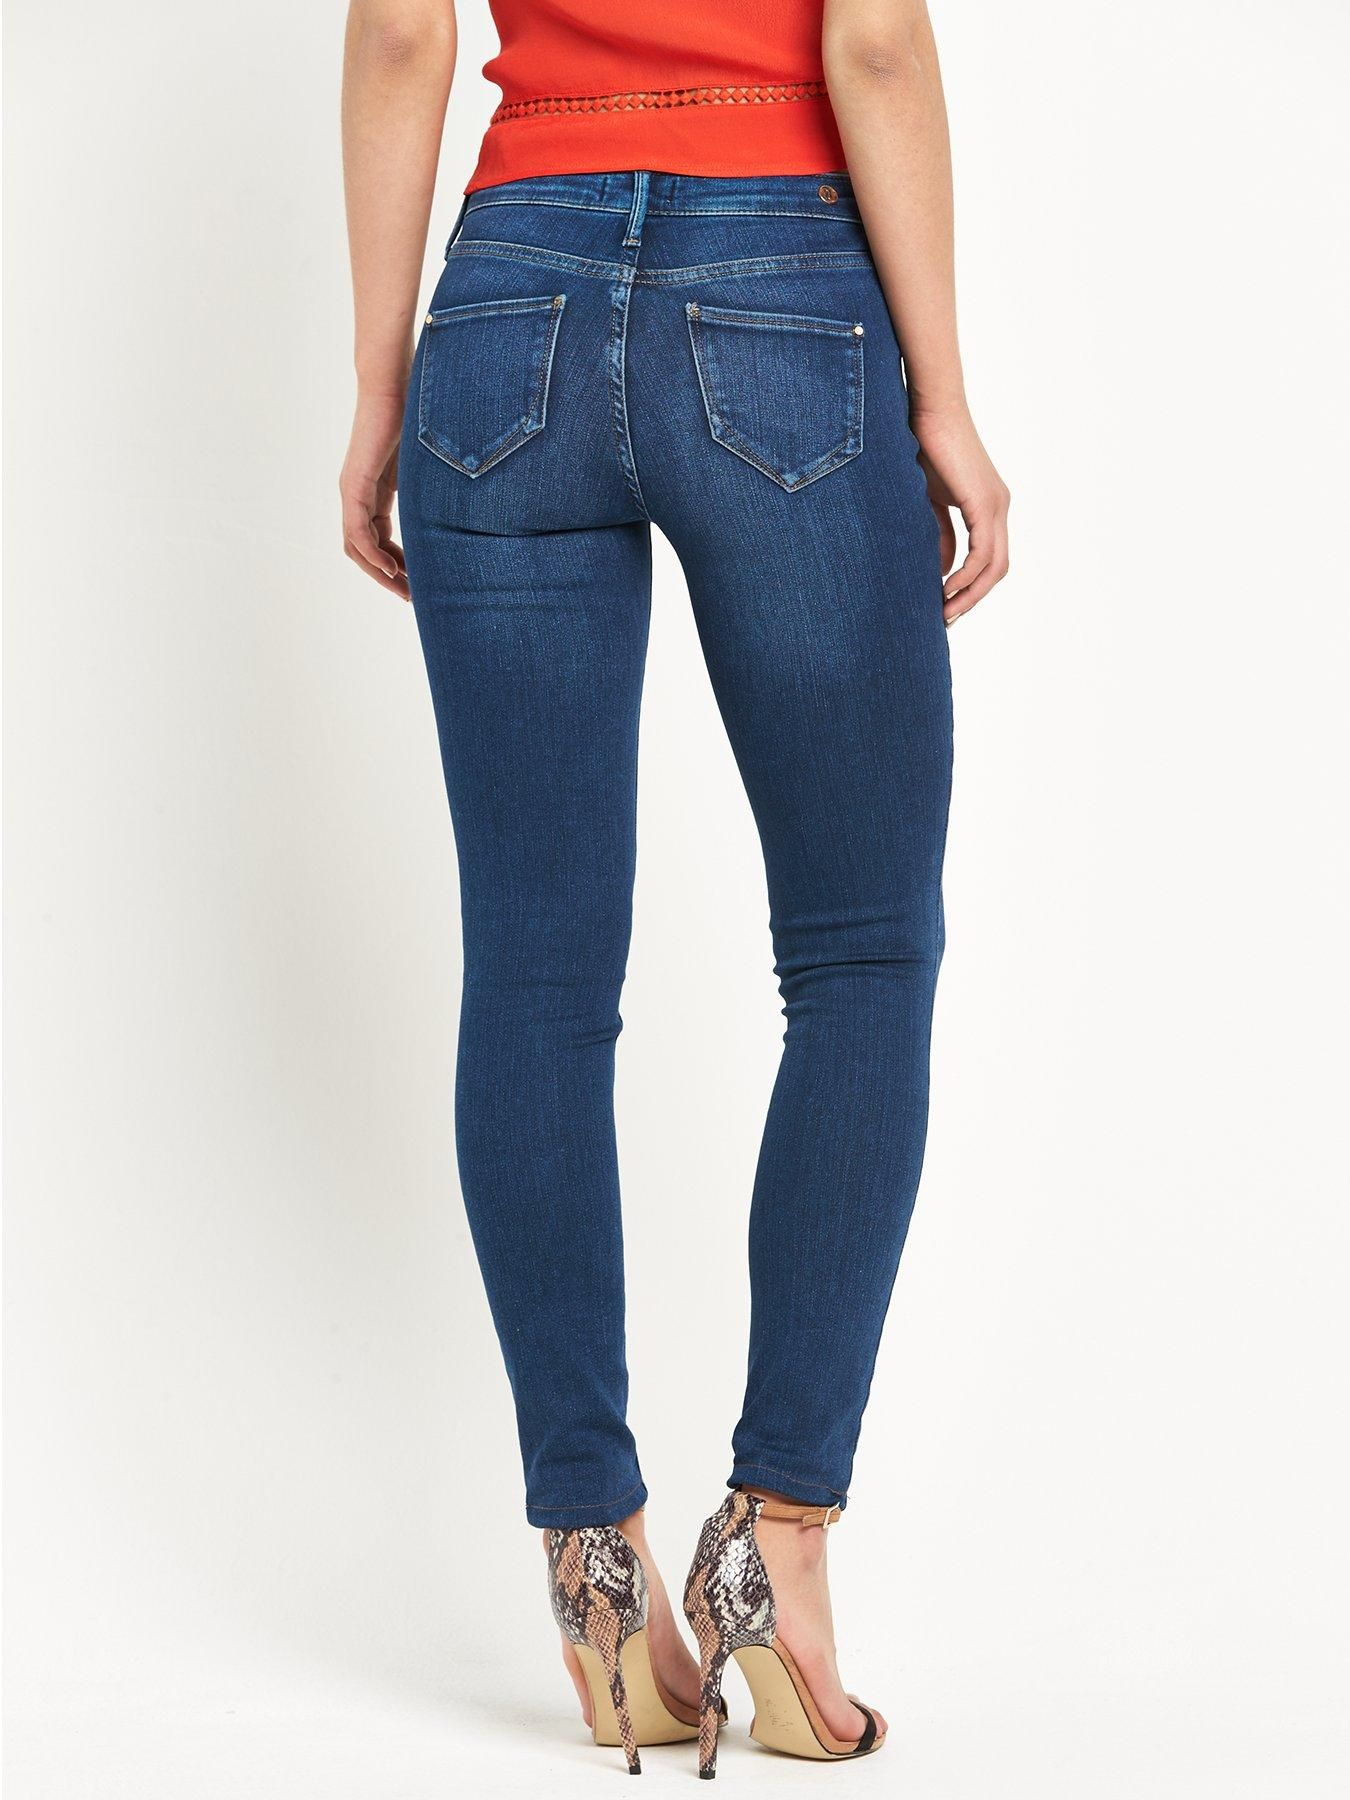 River IslandMolly Skinny Jeans – Mid WashA wear-forever staple, a chic pair of skinnies is a power player in your clothing collection – River Island's Molly skinny jean ticks all the boxes! The Molly is washed to a bright mid blue hue with contrast tan stitching for a classic, streamlined edge. Cut closely to your figure and woven with a hint of stretch, all eyes are on you in this second-skin design! Try with fresh white sneakers, a basic tee and luxe bomber jacket in the daytime, swapping…